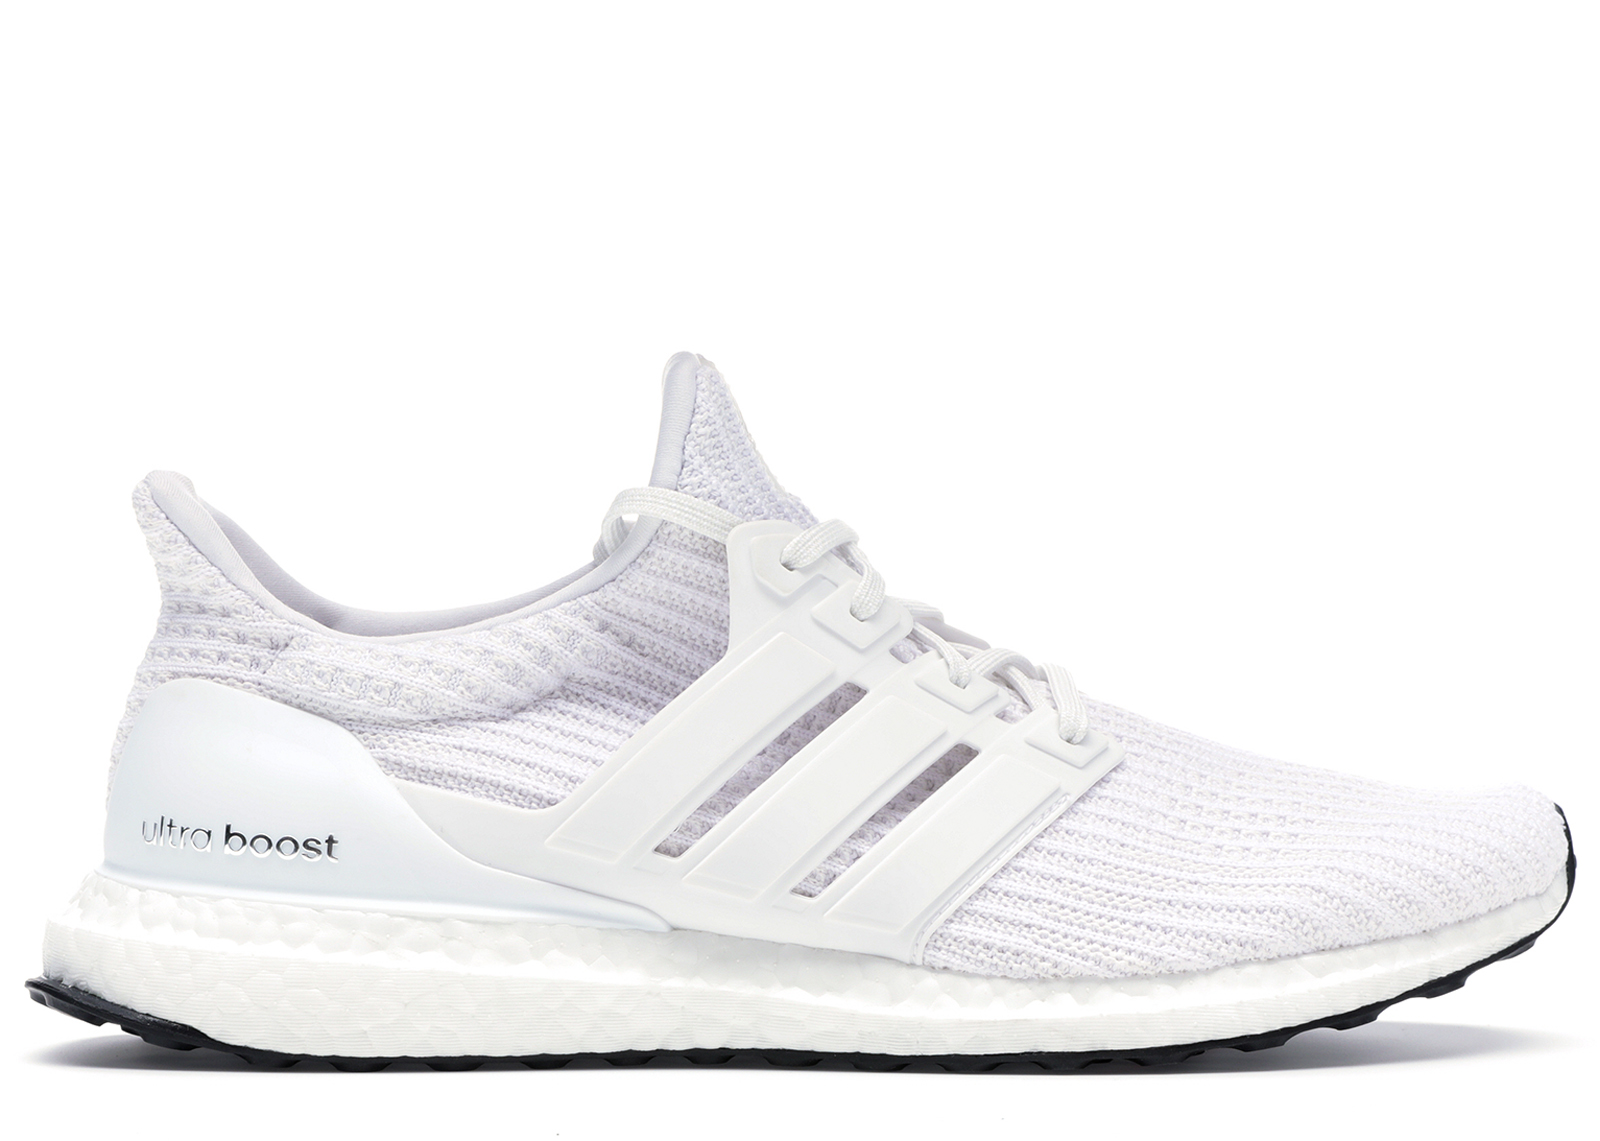 adidas ultra boost white reflective, Unisex adidas originals